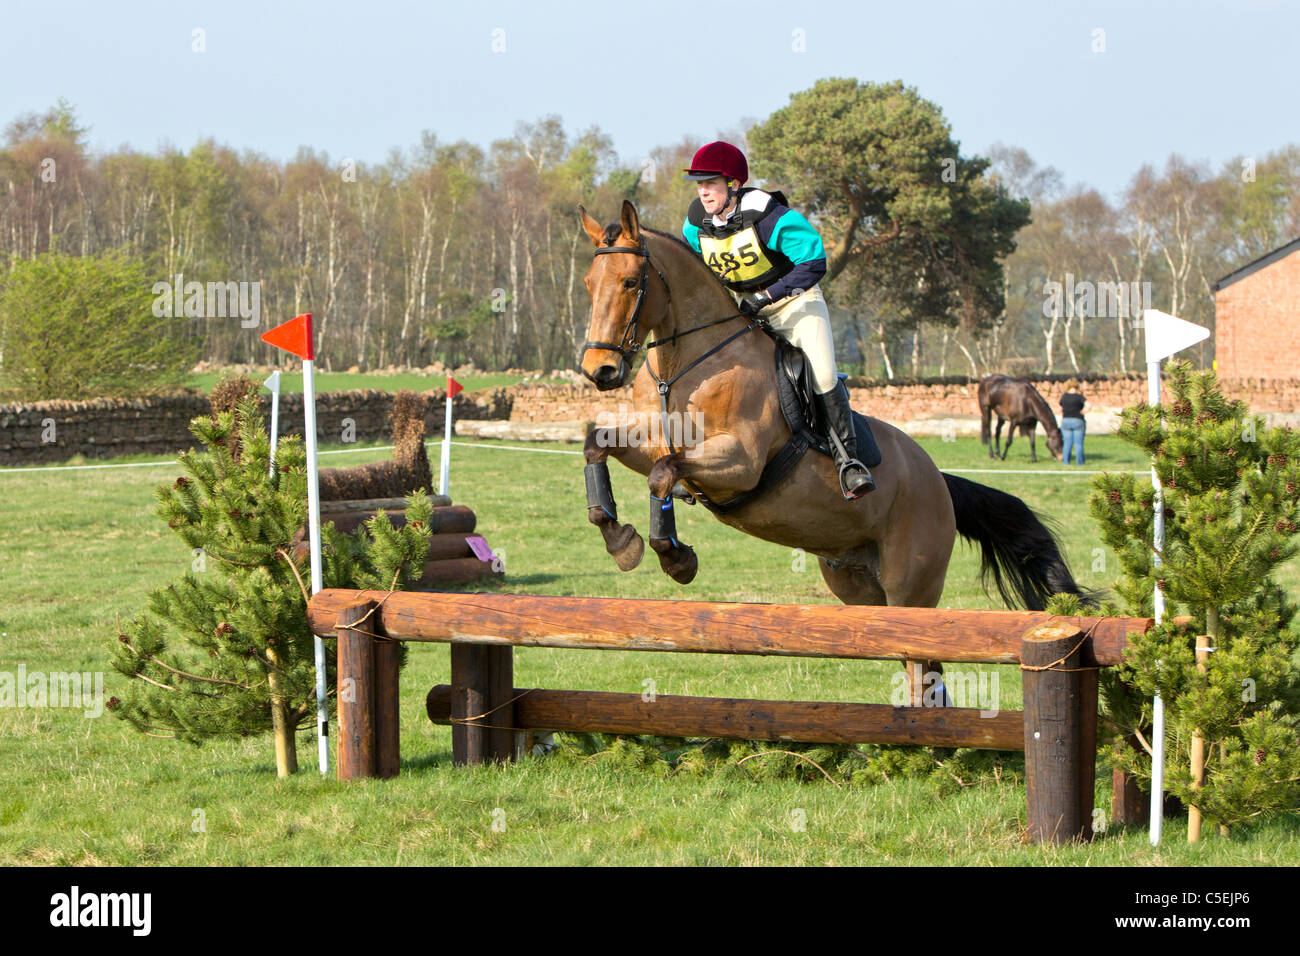 Horse jumping over fence at a British Eventing  competition - Stock Image